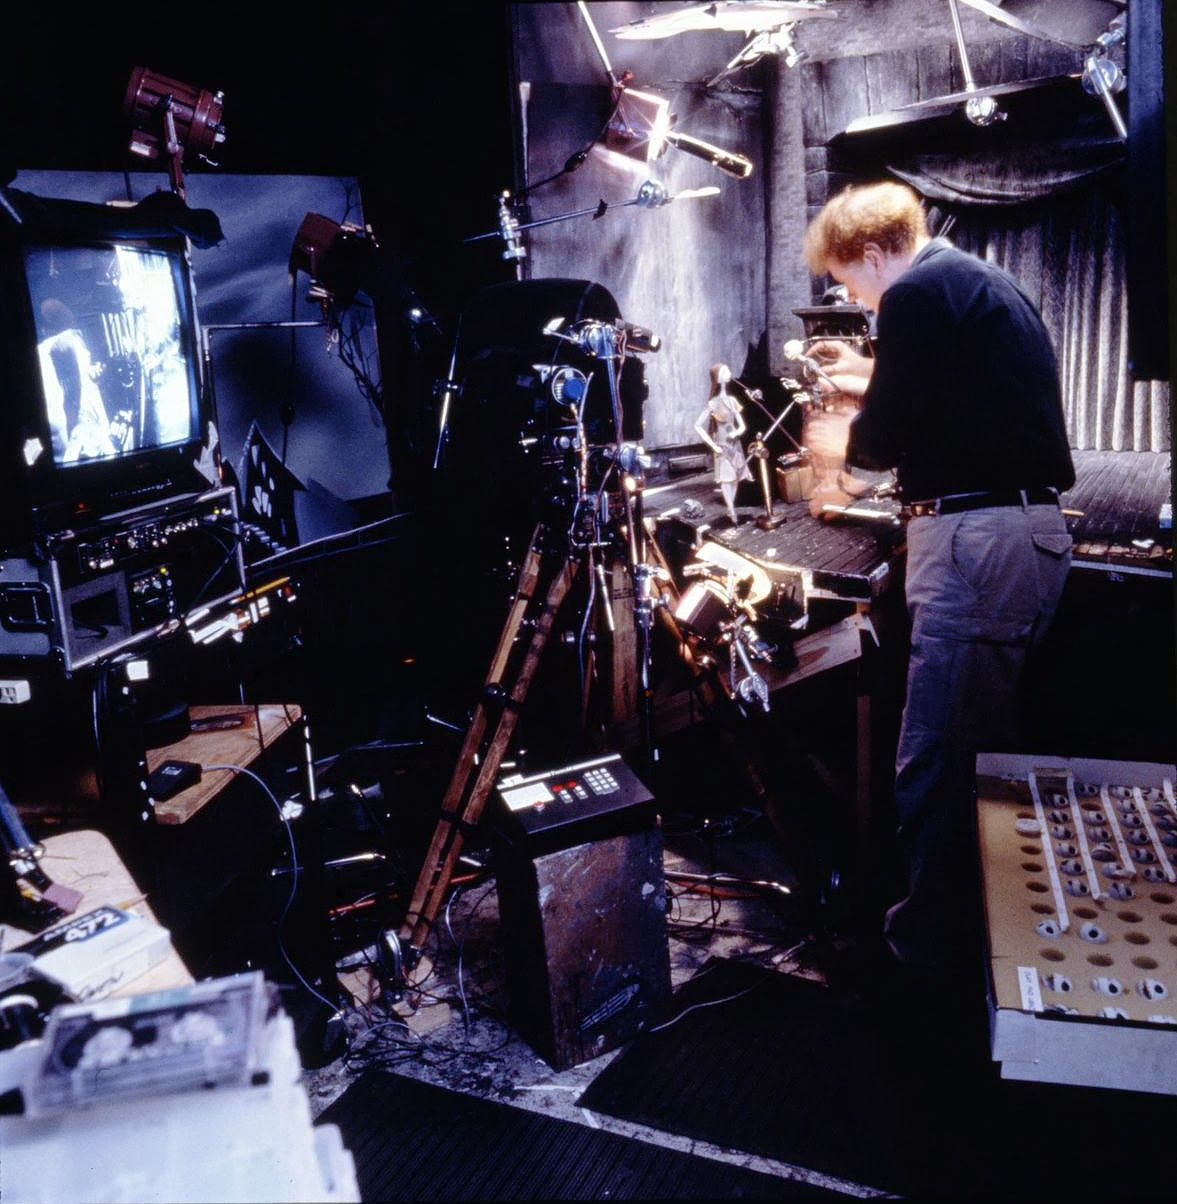 the nightmare before christmas behind the scenes - Buscar con Google ...